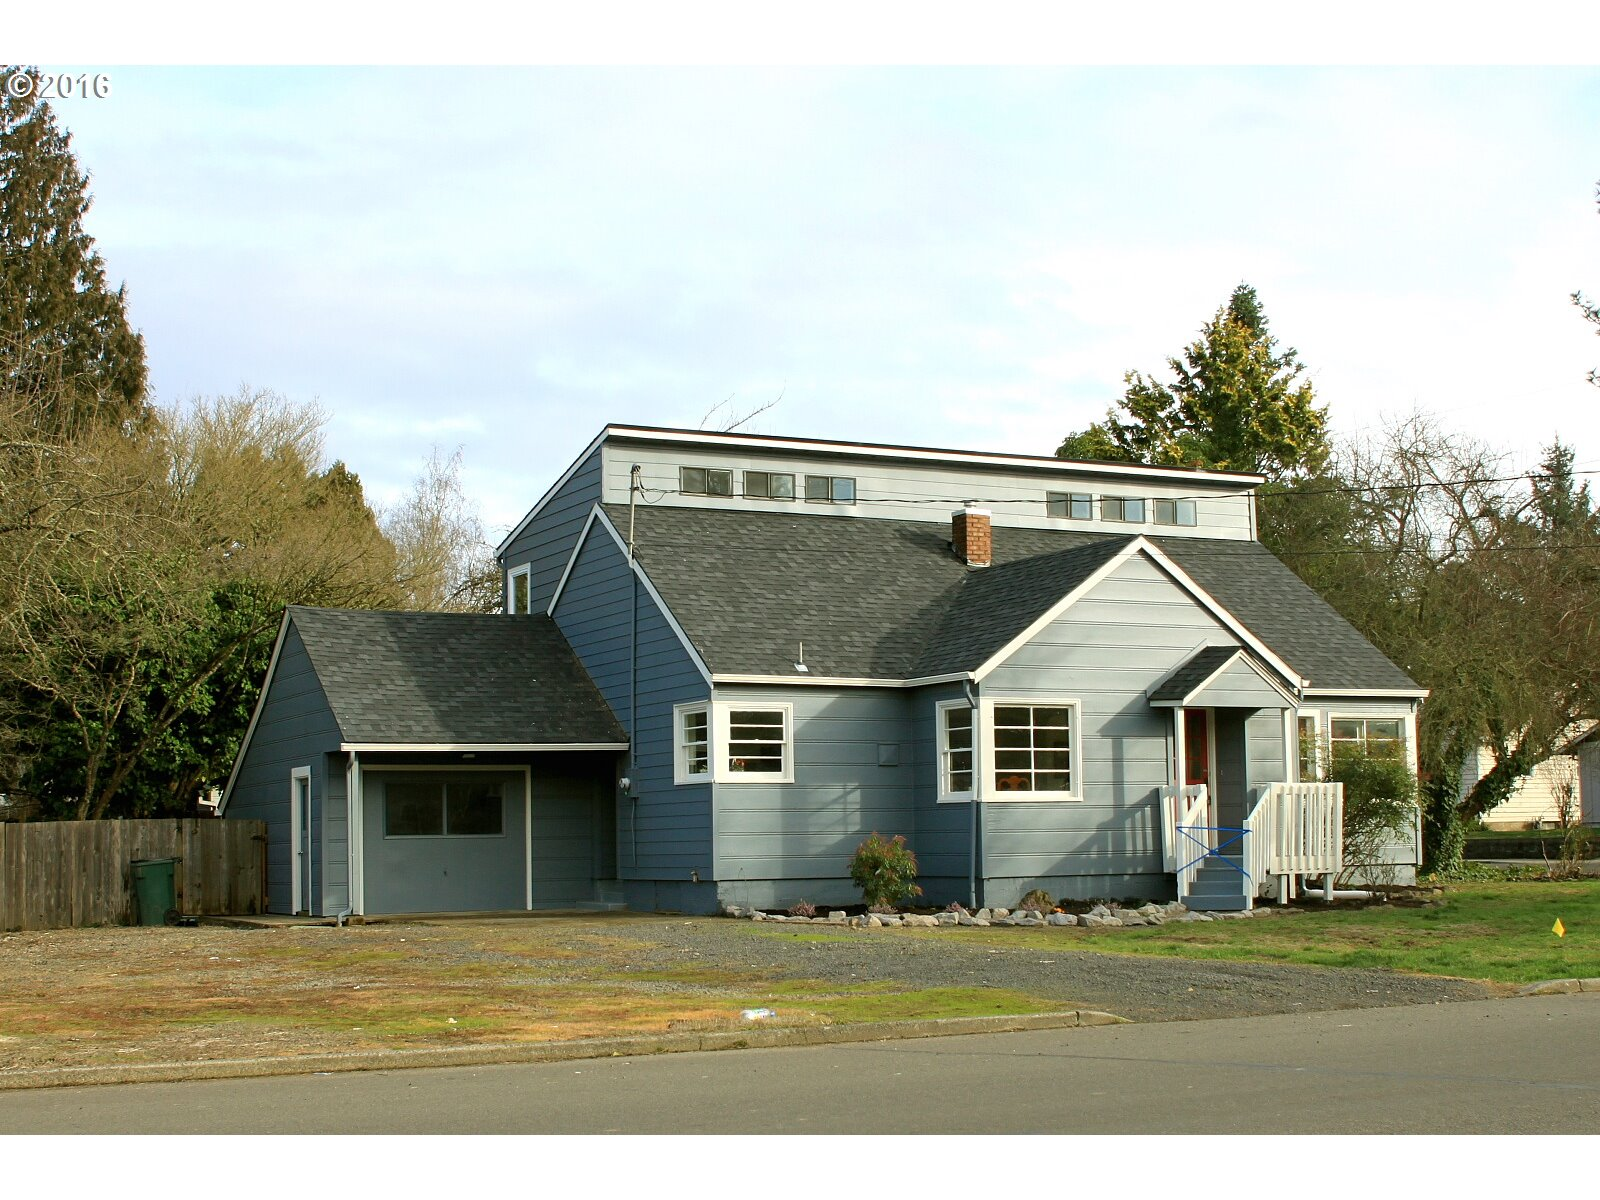 1803 hawthorne st forest grove or 97116 mls 16137046 for Forest grove plumbing